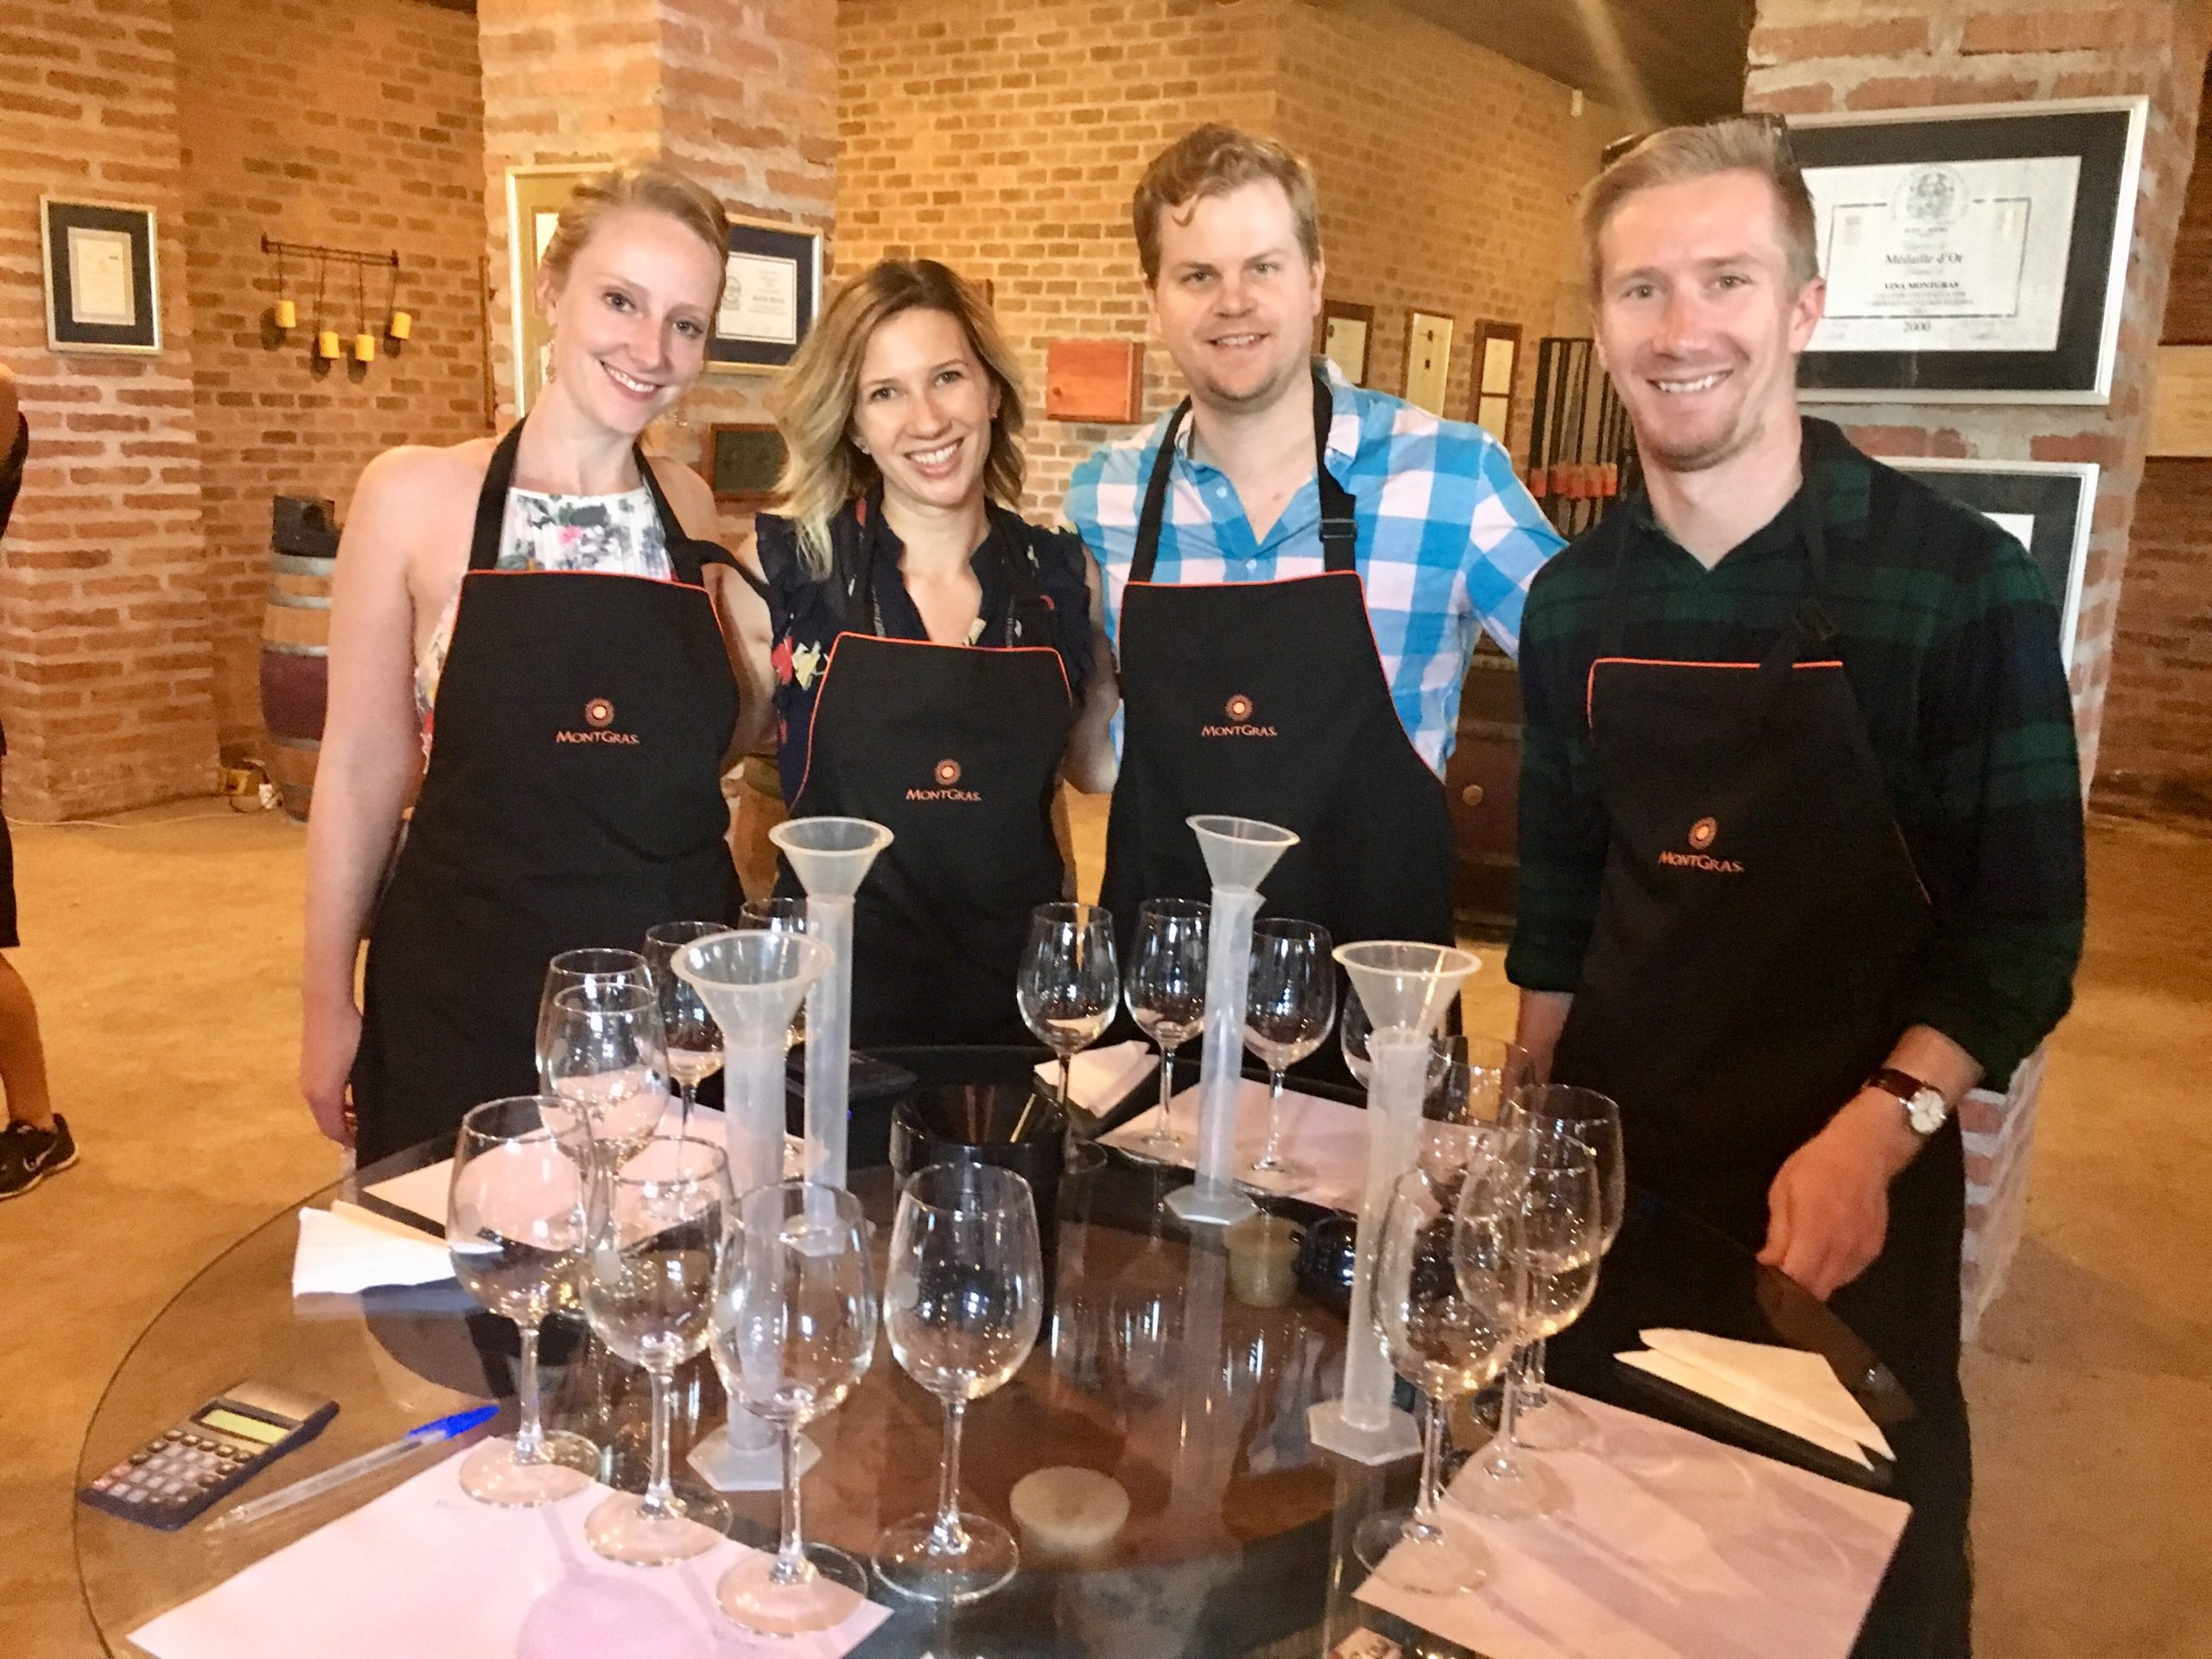 four people enjoying mixing their own wines